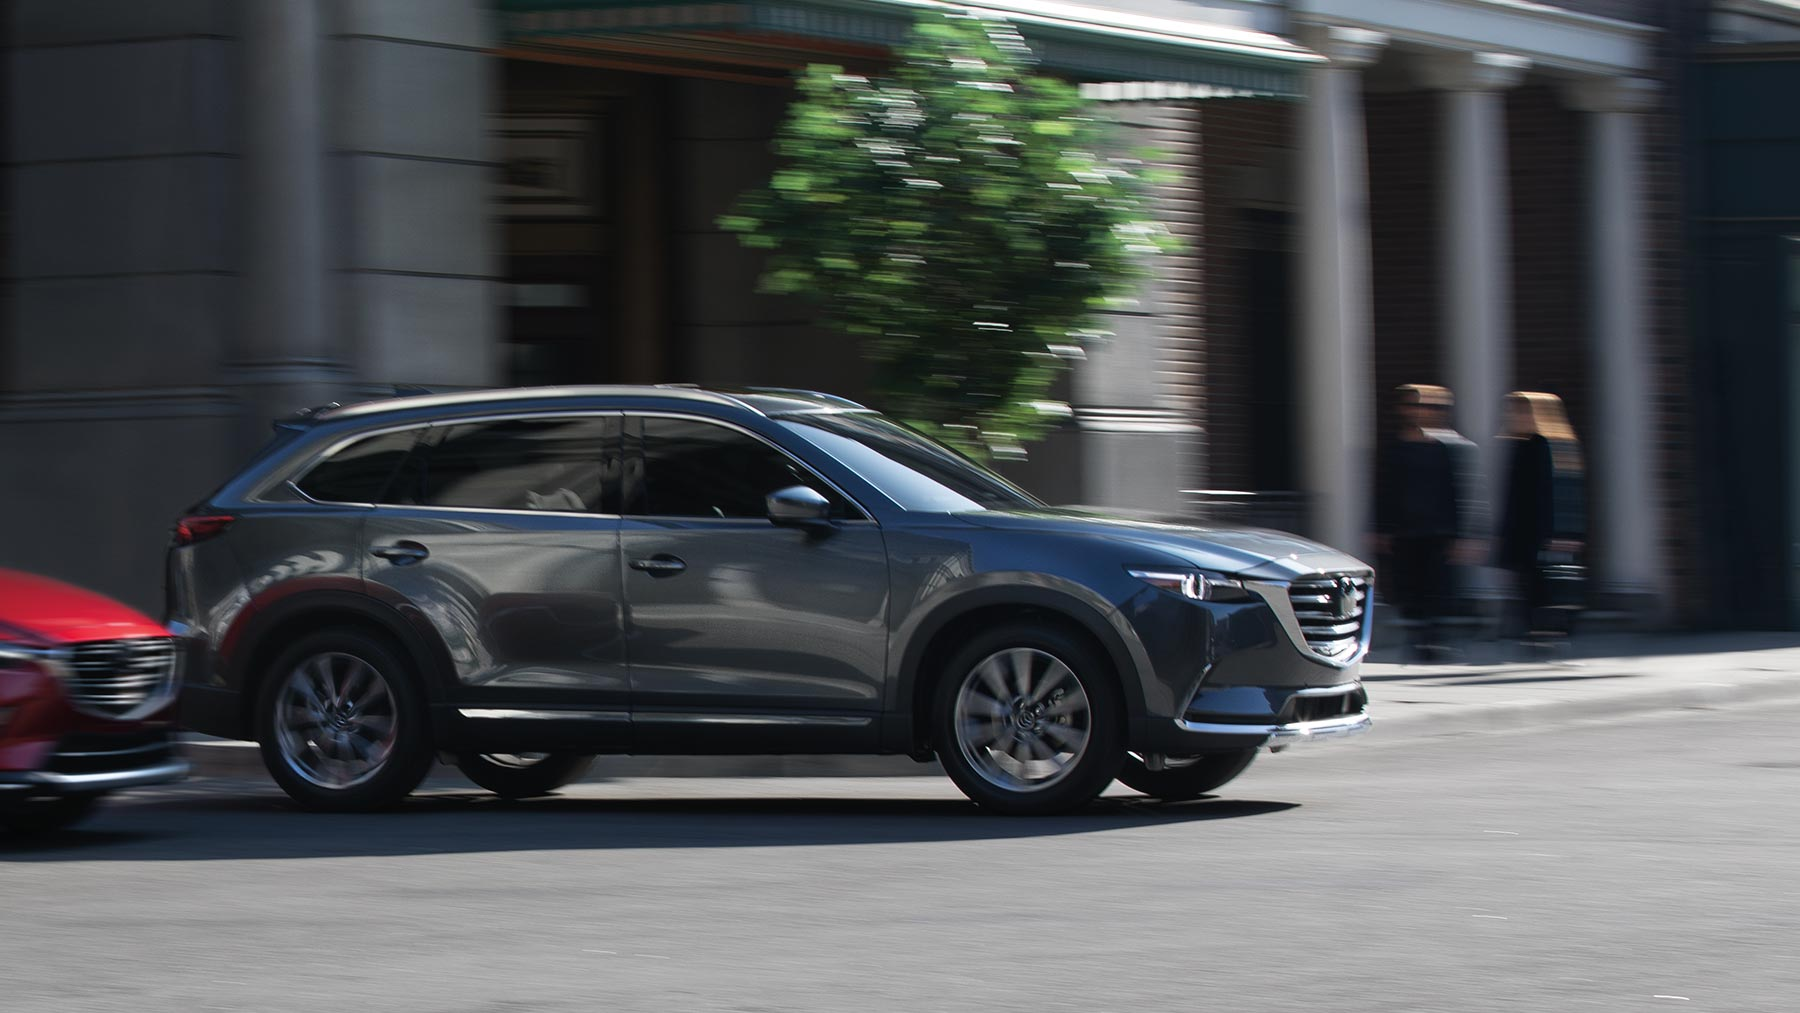 2020 Mazda Cx 9 Review.The 2020 Mazda Cx 9 Offers Exciting New Features The News